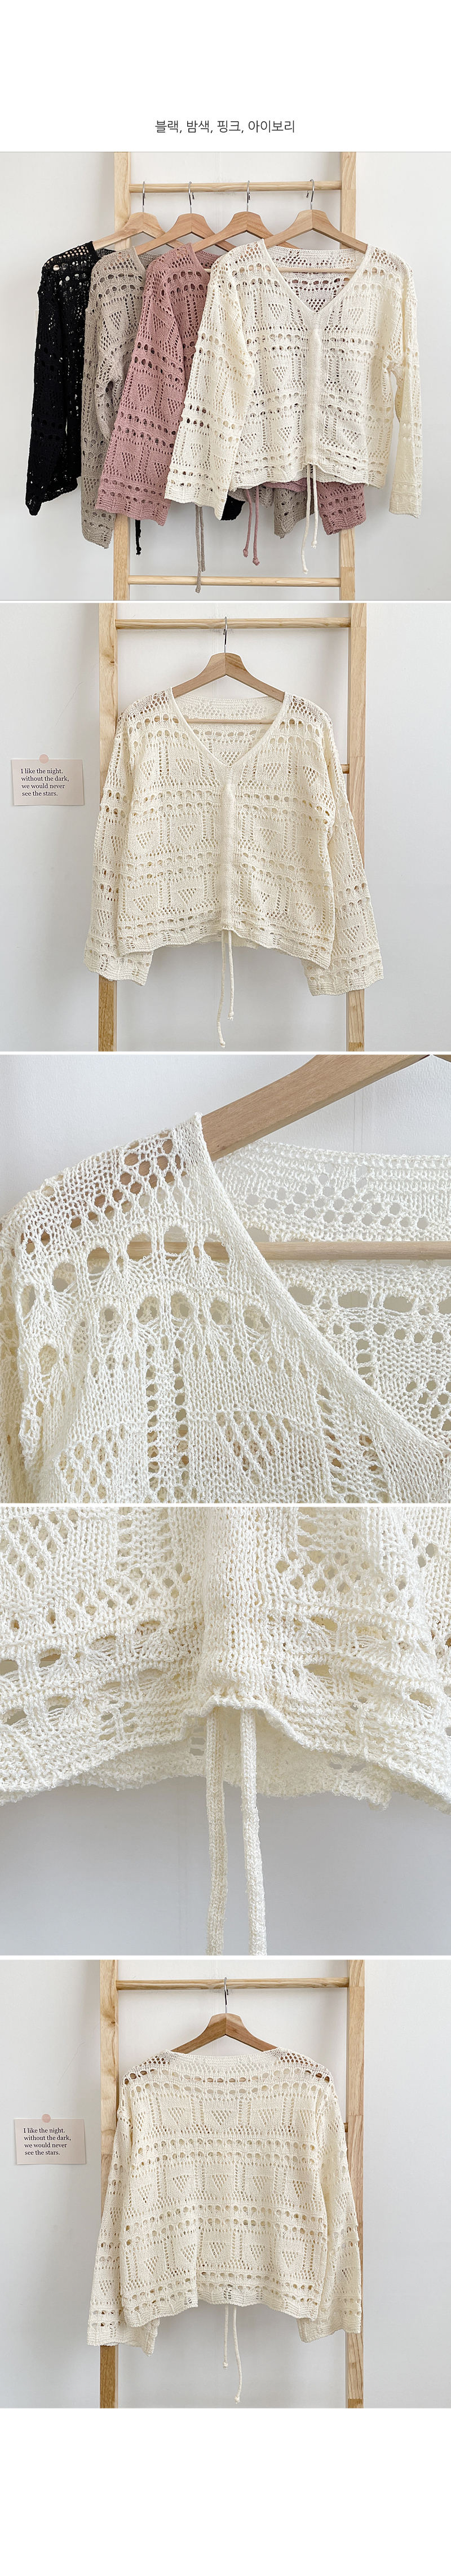 Punched String Knitwear